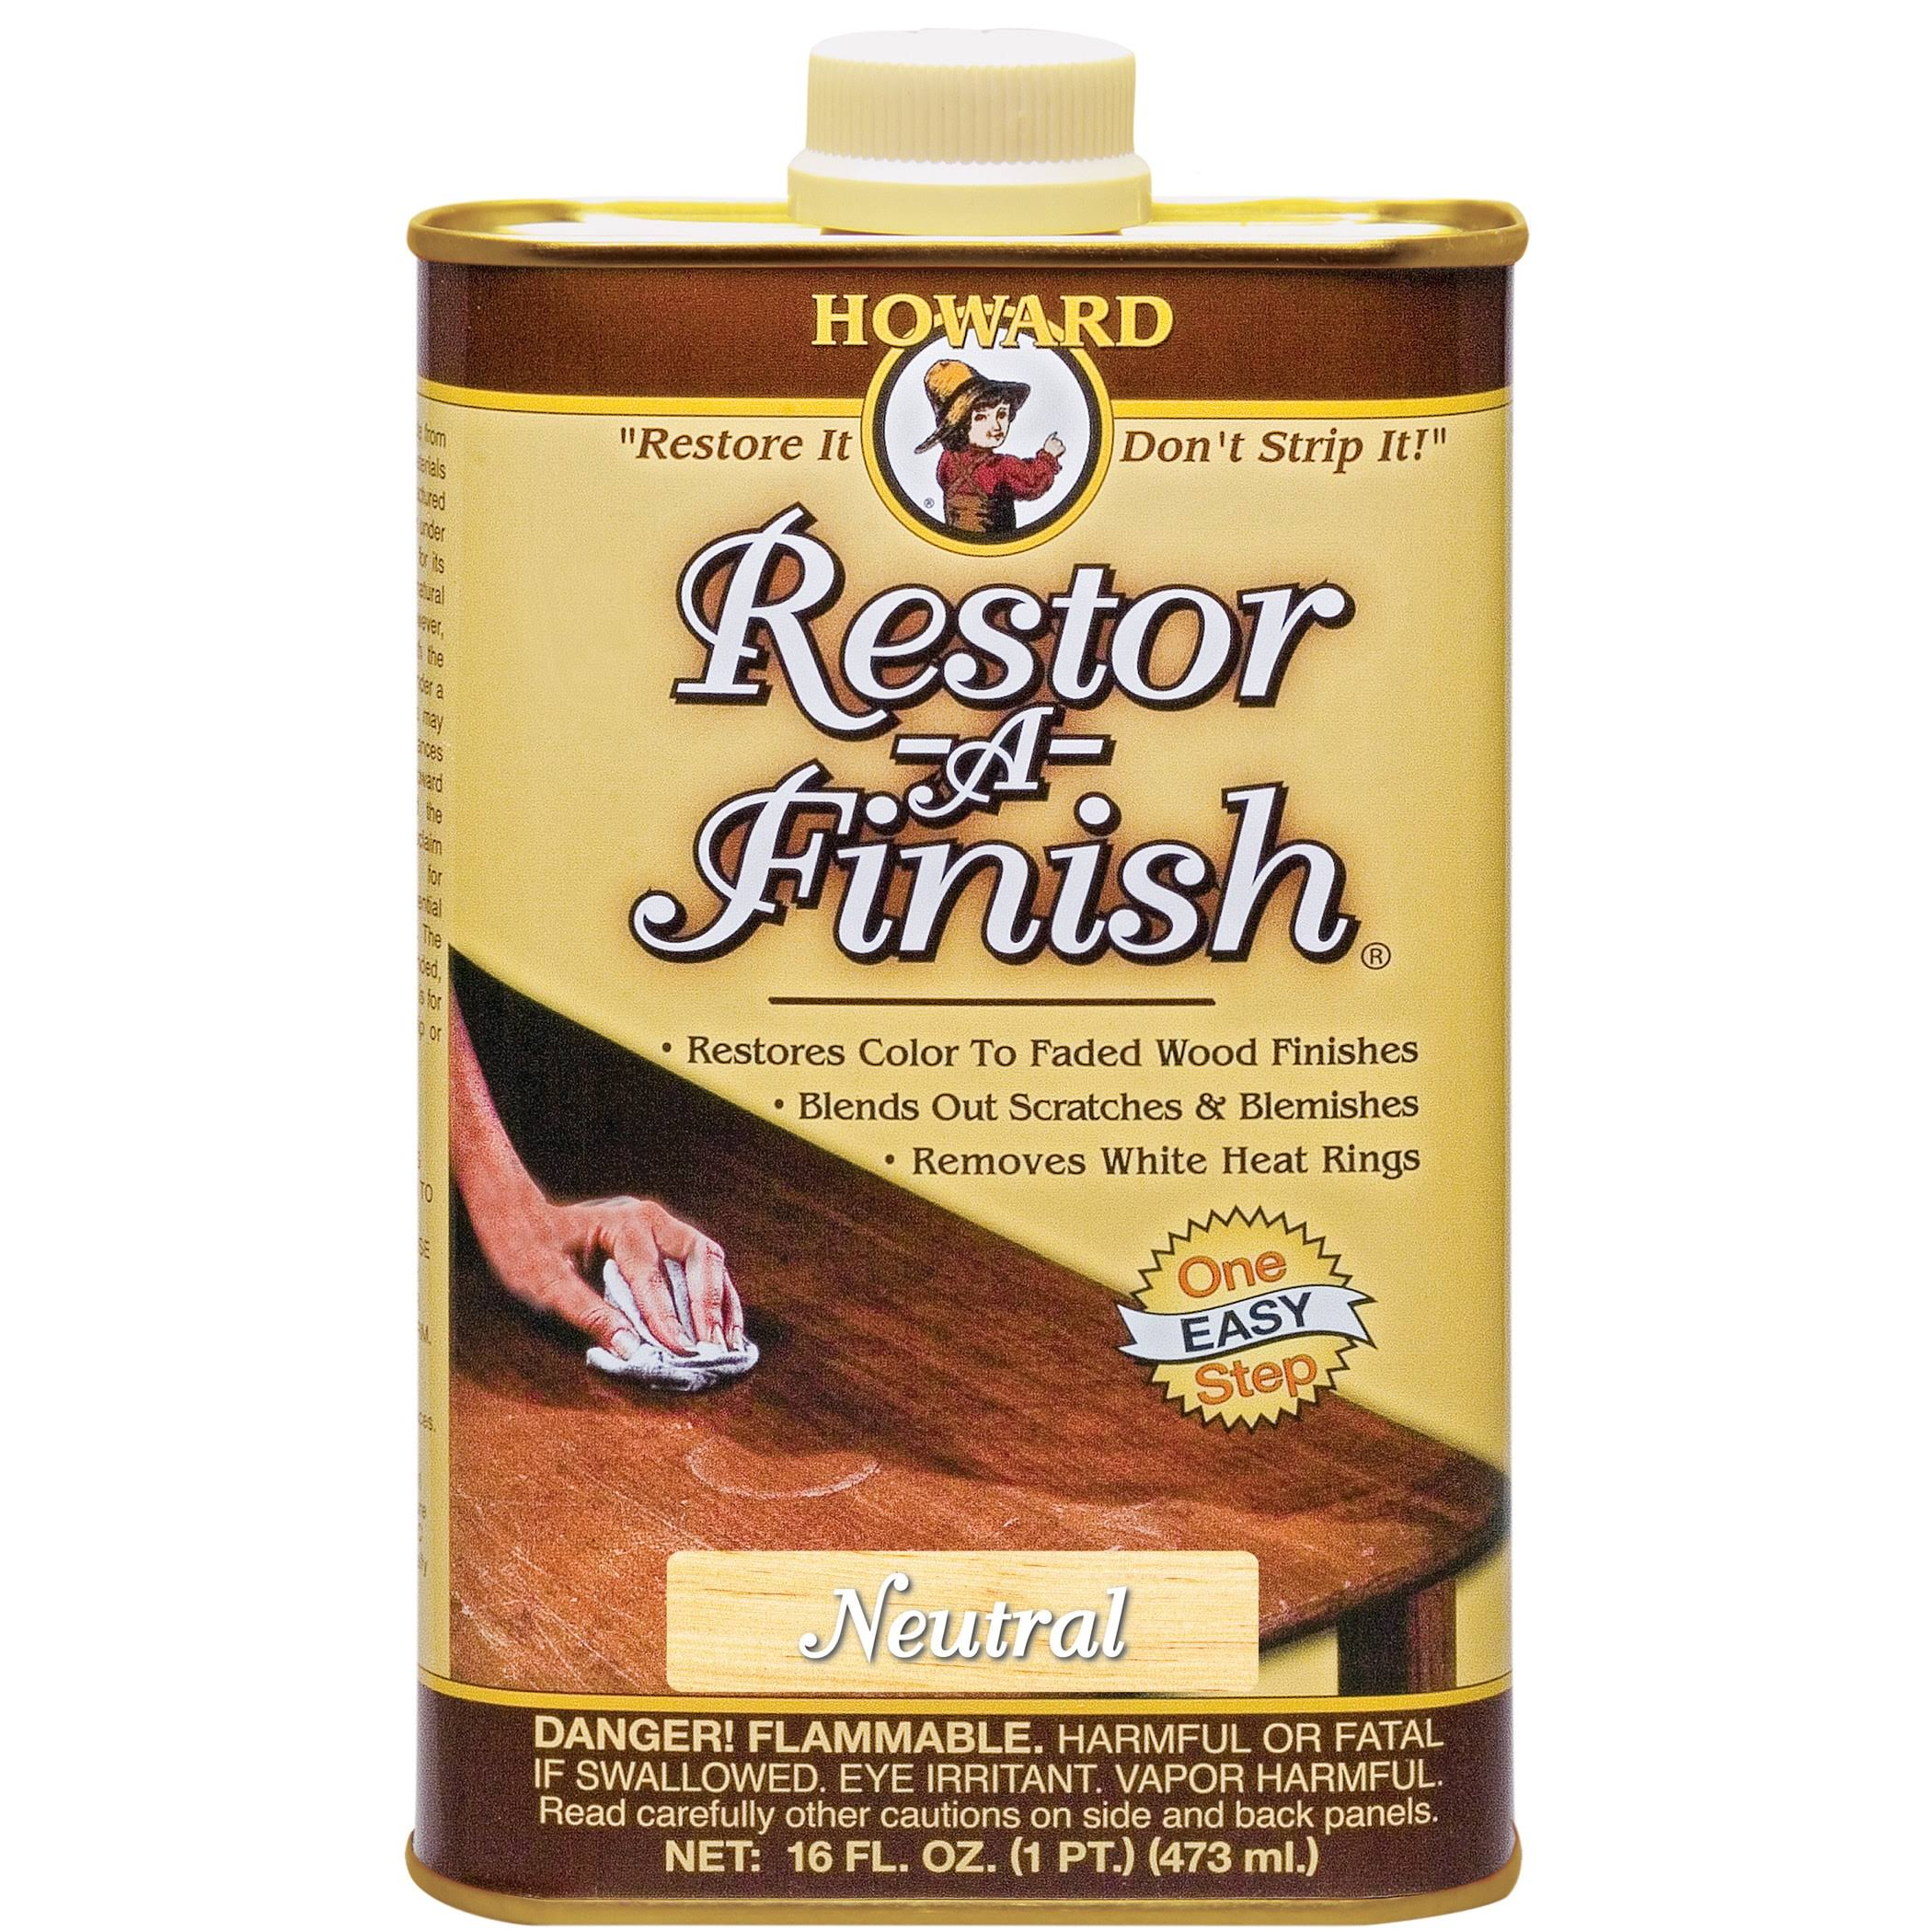 Howard RF1016 Restor A Finish - Neutral, 16oz